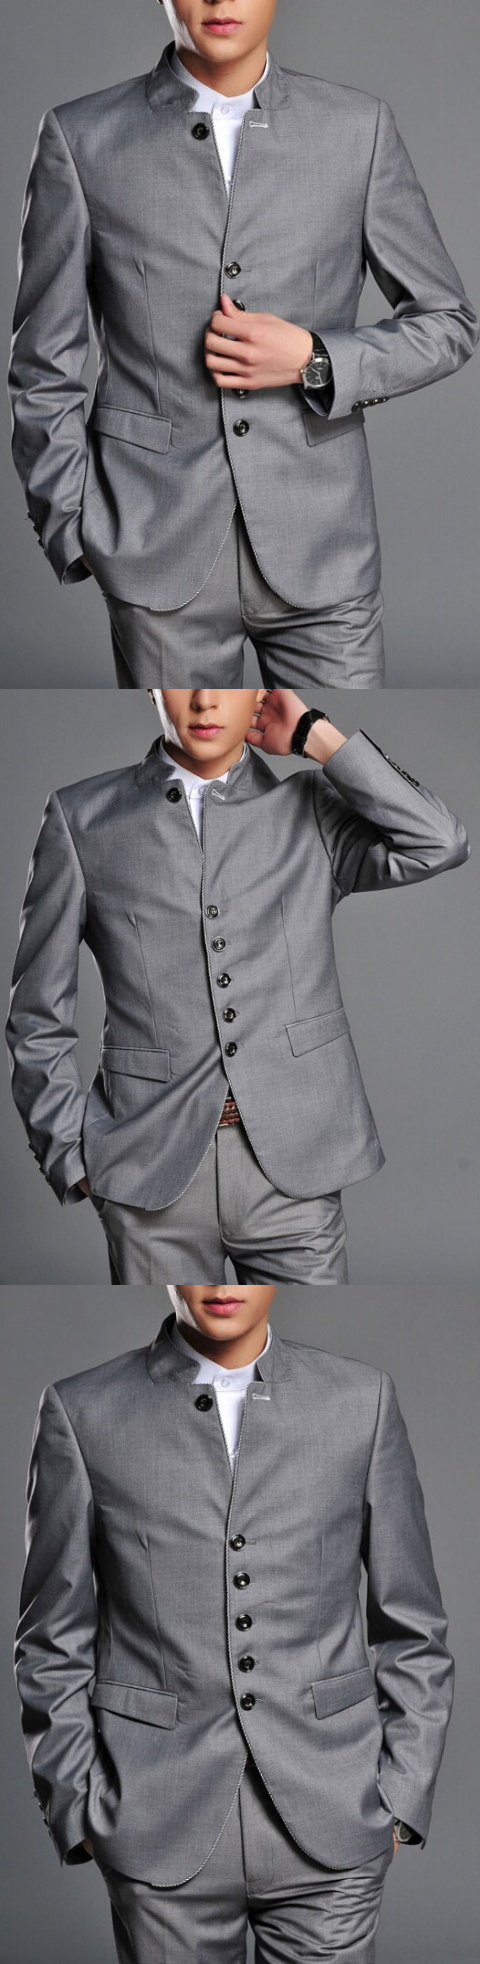 Modernised Snug Fit Chic Mao Suit (RM)